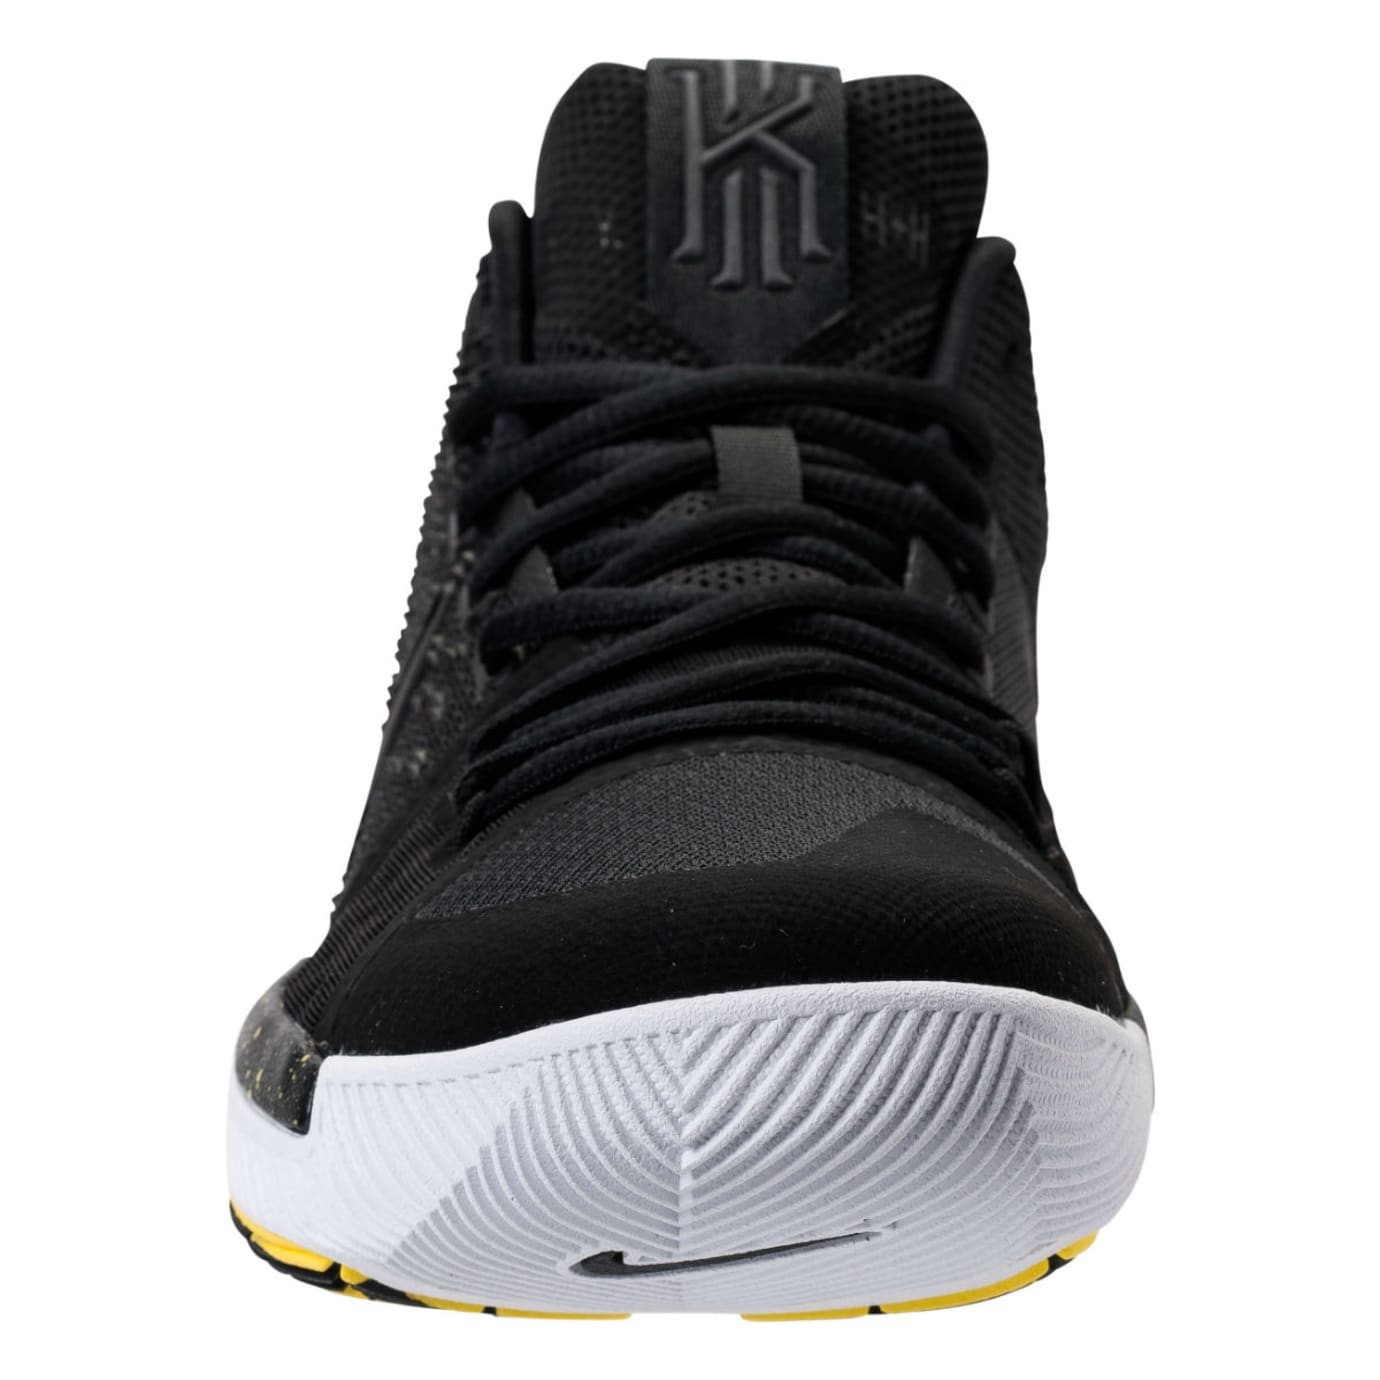 Nike Kyrie 3 Black/Yellow Release Date Front 852395-901